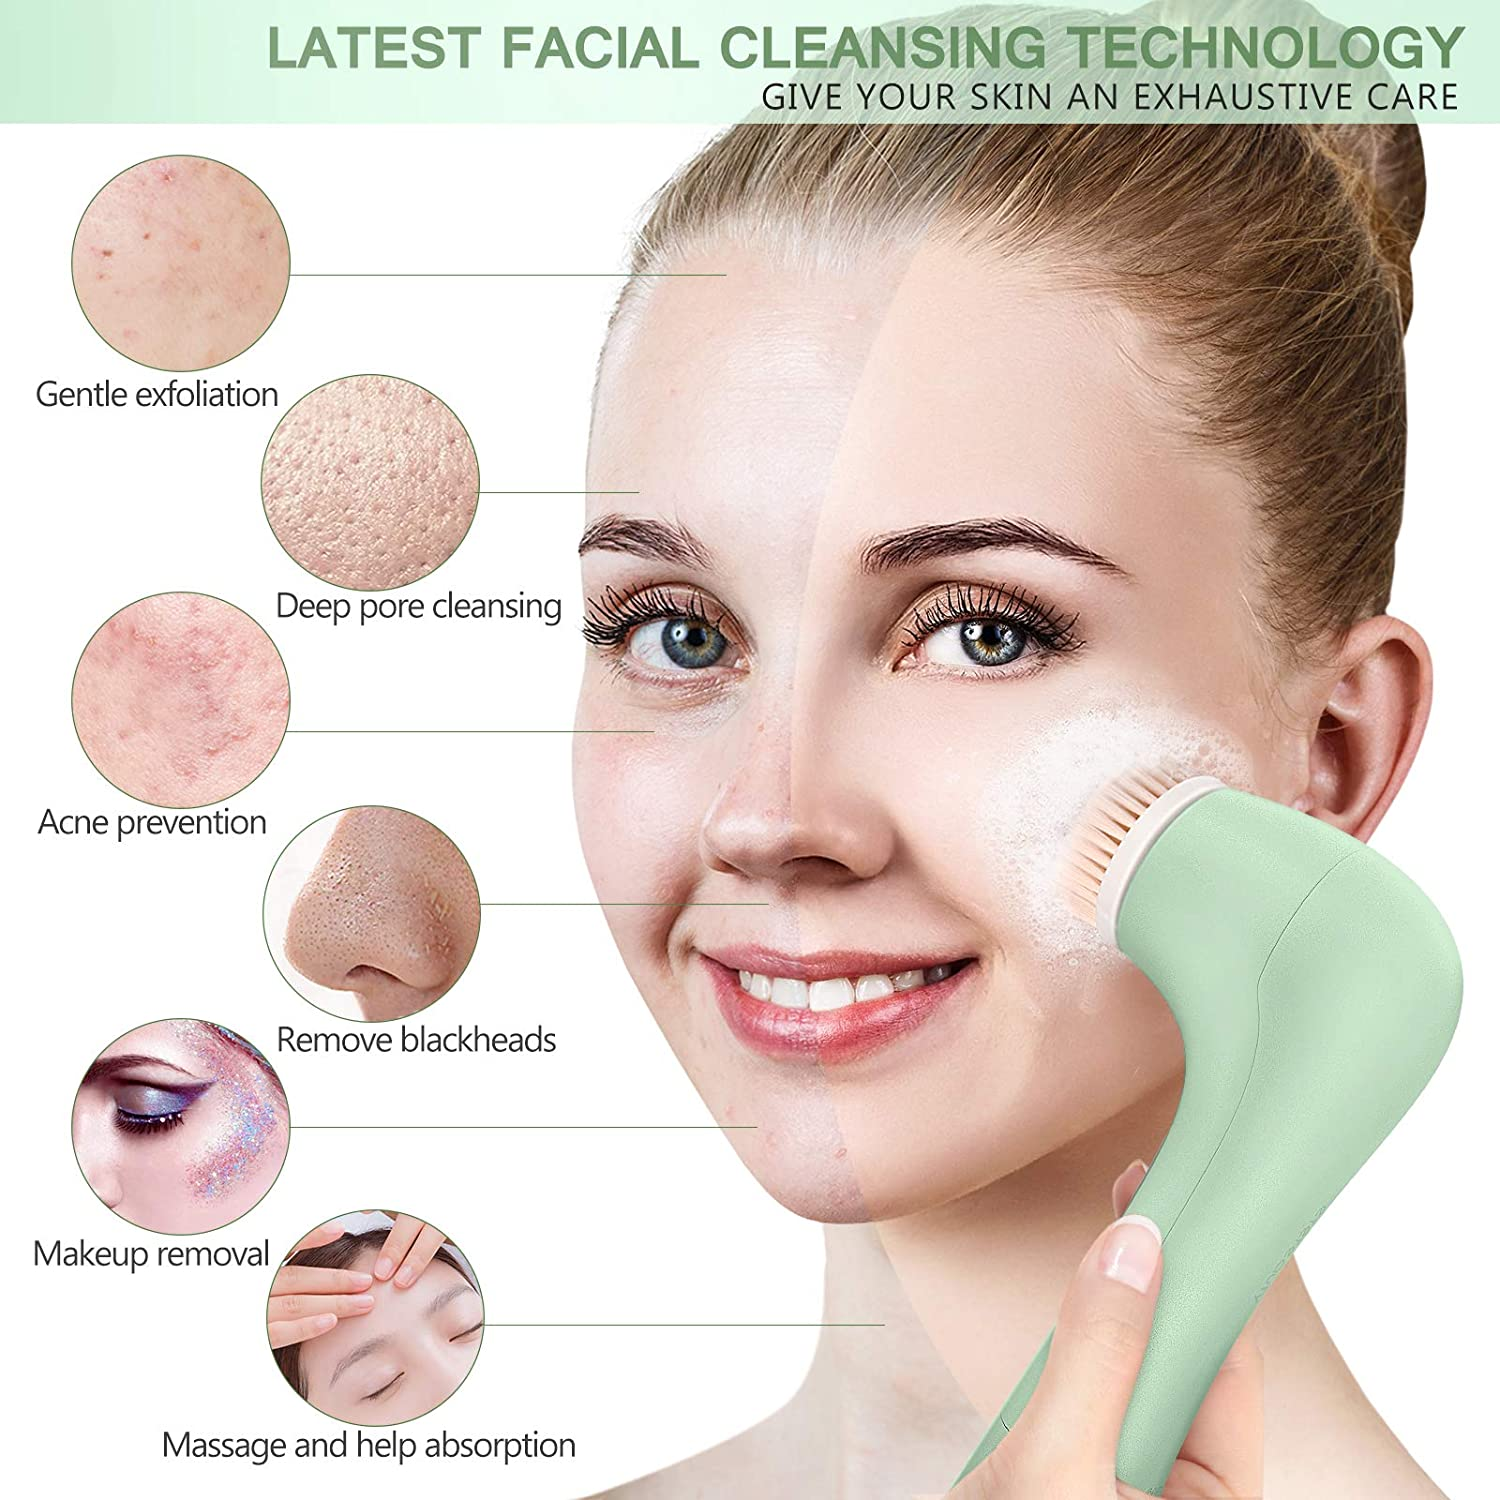 Face Wash Spin Brush, WaterproofFacial Cleansing Brush with 7 Brush Heads for Deep Cleansing (Dark Green)